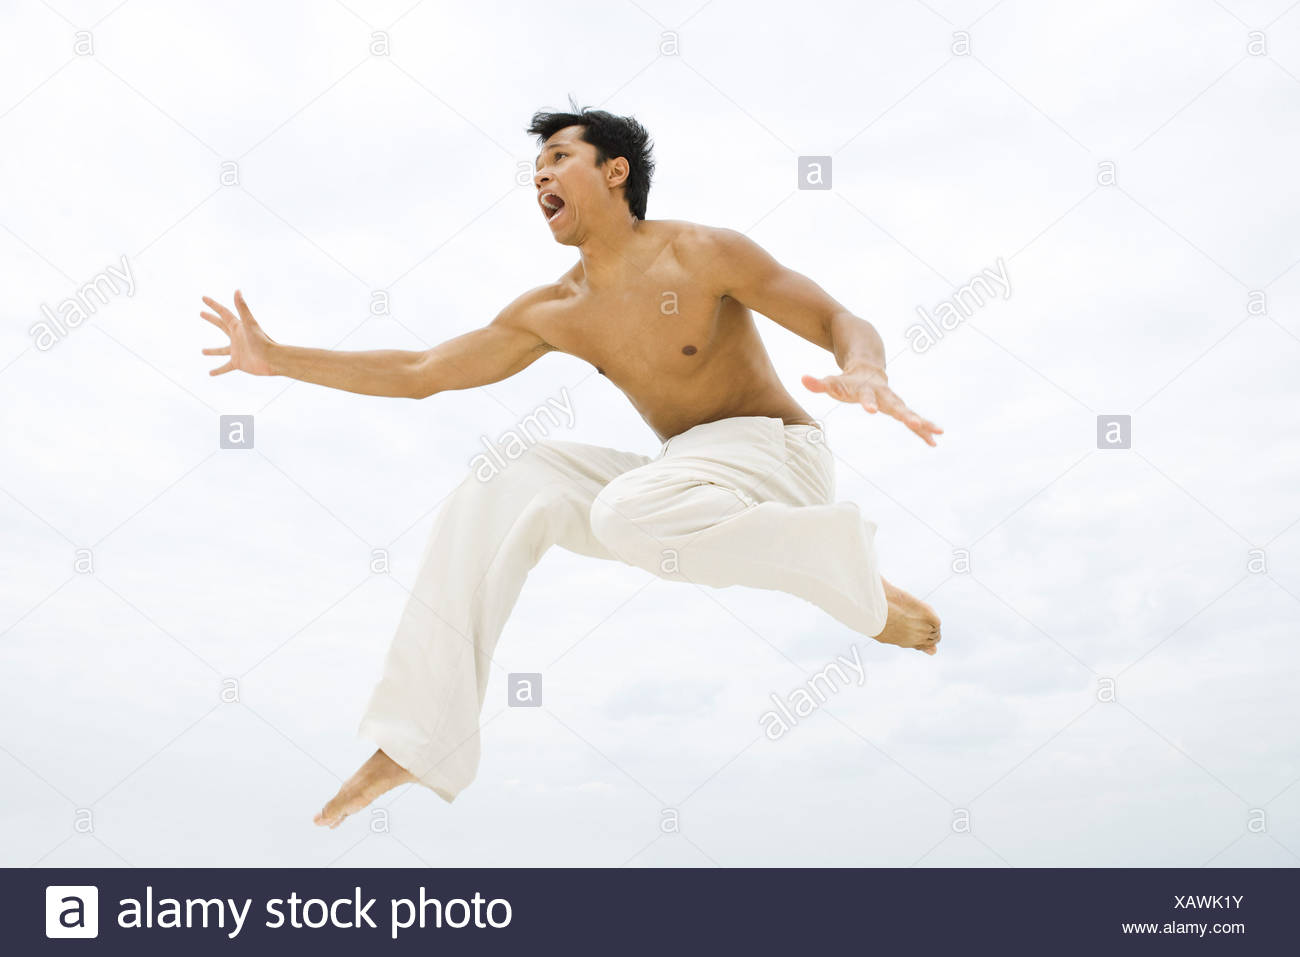 L'homme en sautant en l'air, side view Photo Stock